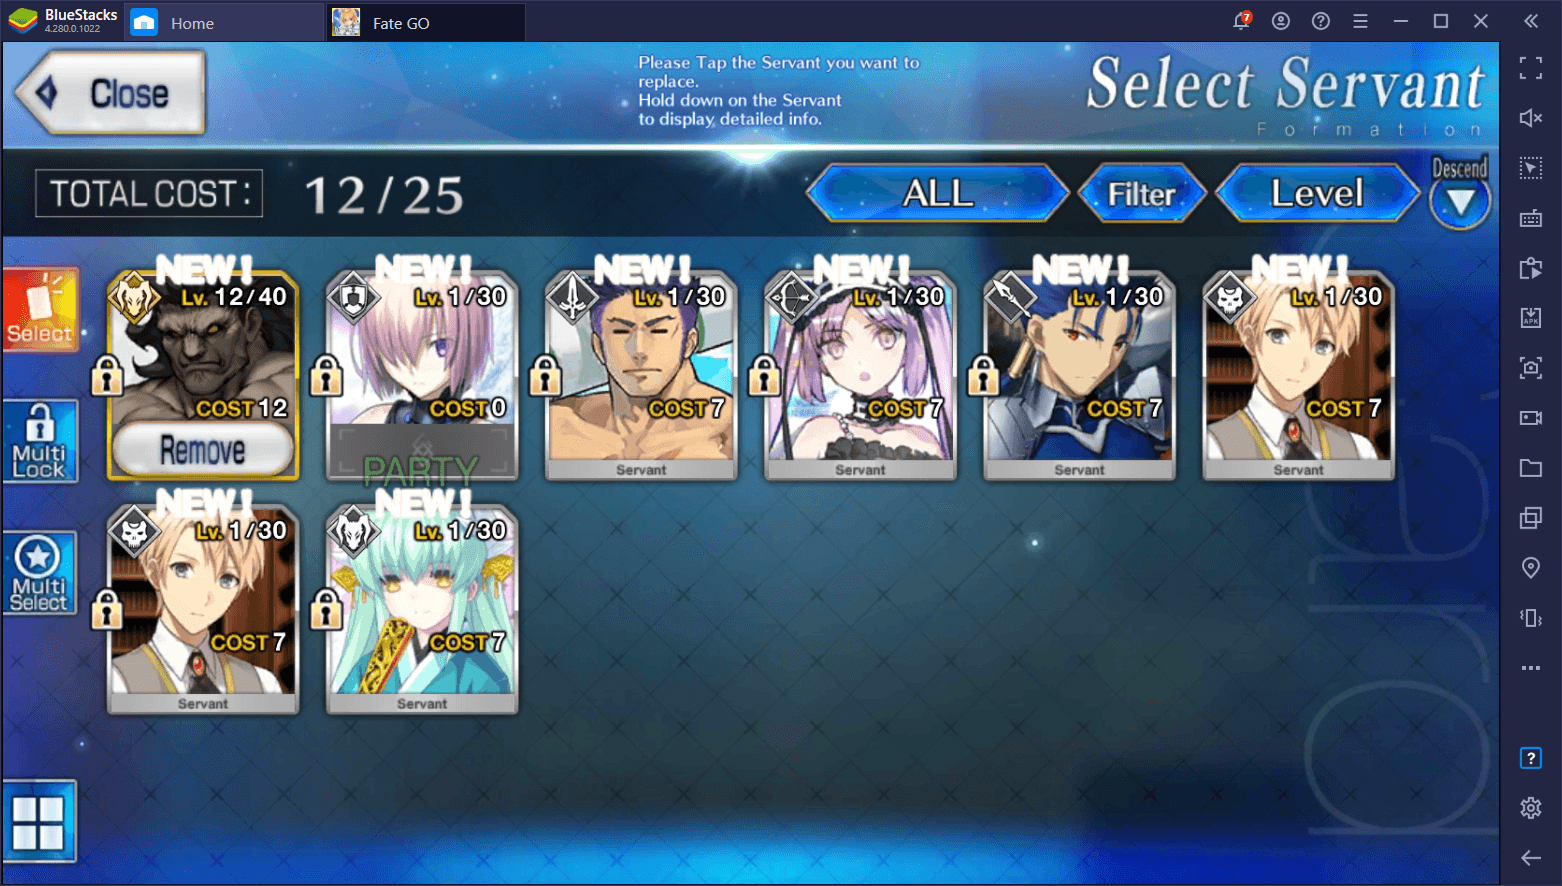 How to Use Our BlueStacks Tools Improve Your Experience in Fate/Grand Order